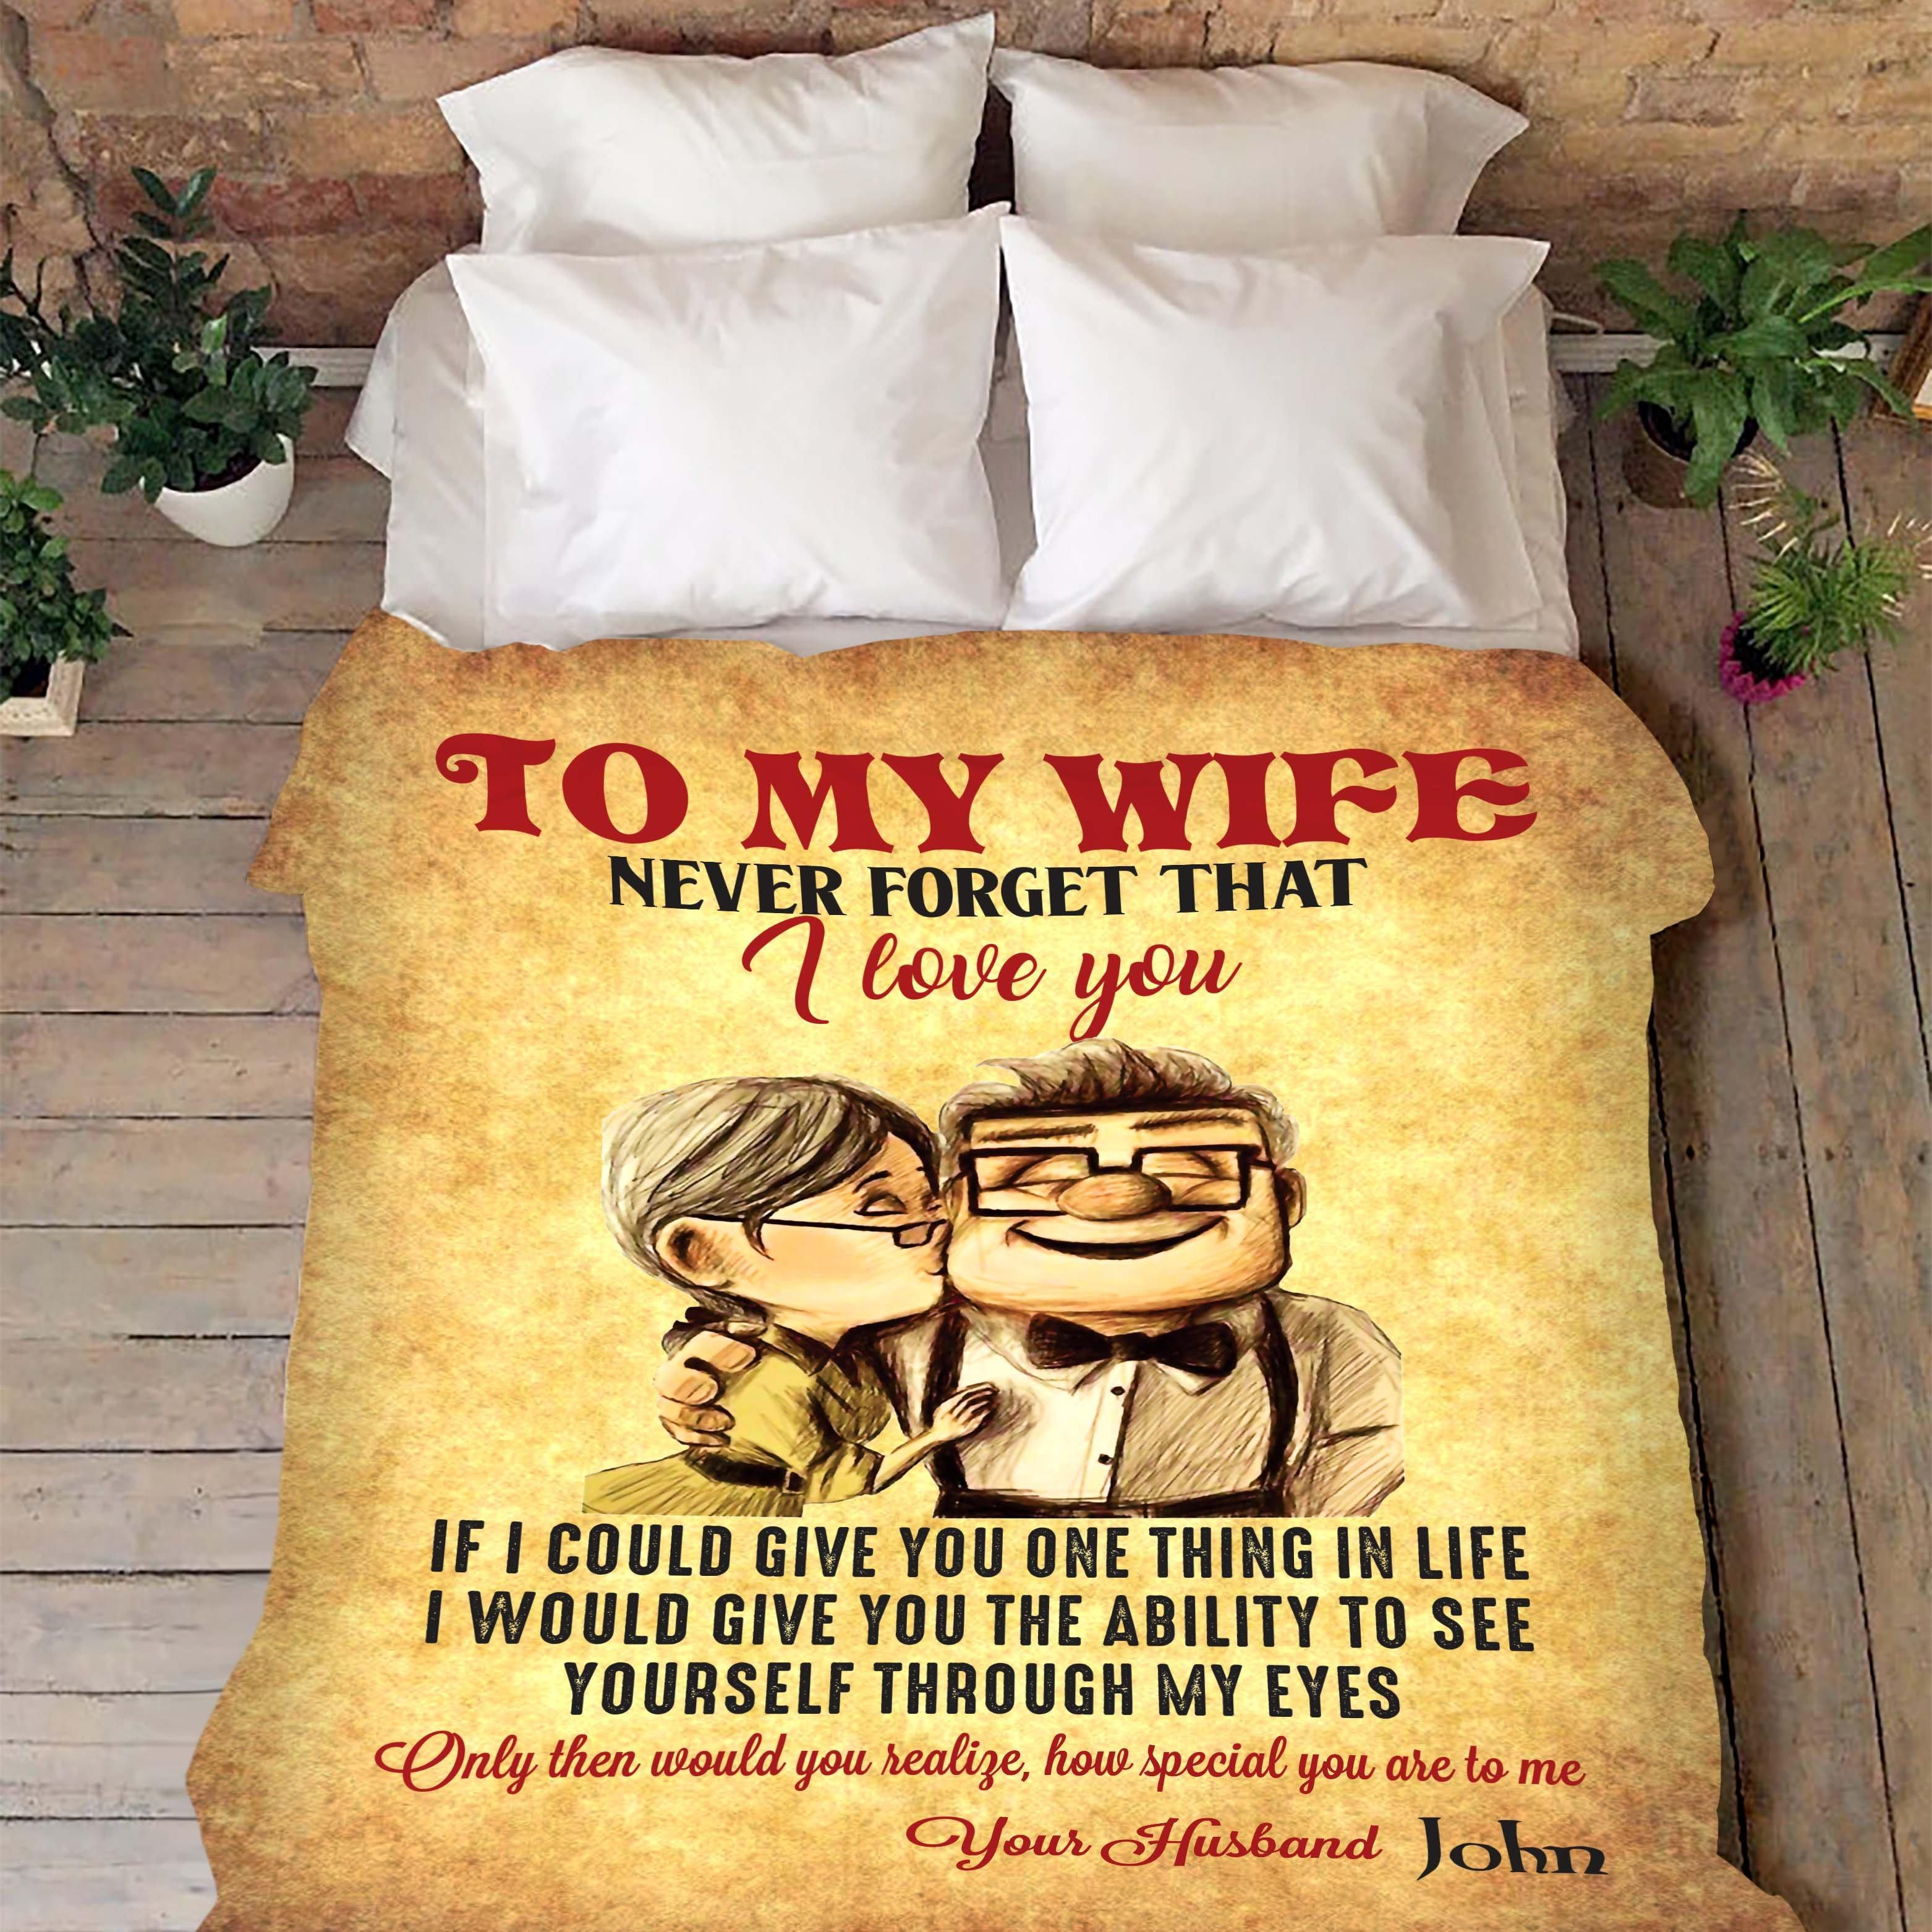 Up movie to my wife never forget that I love you blanket - size 50x60